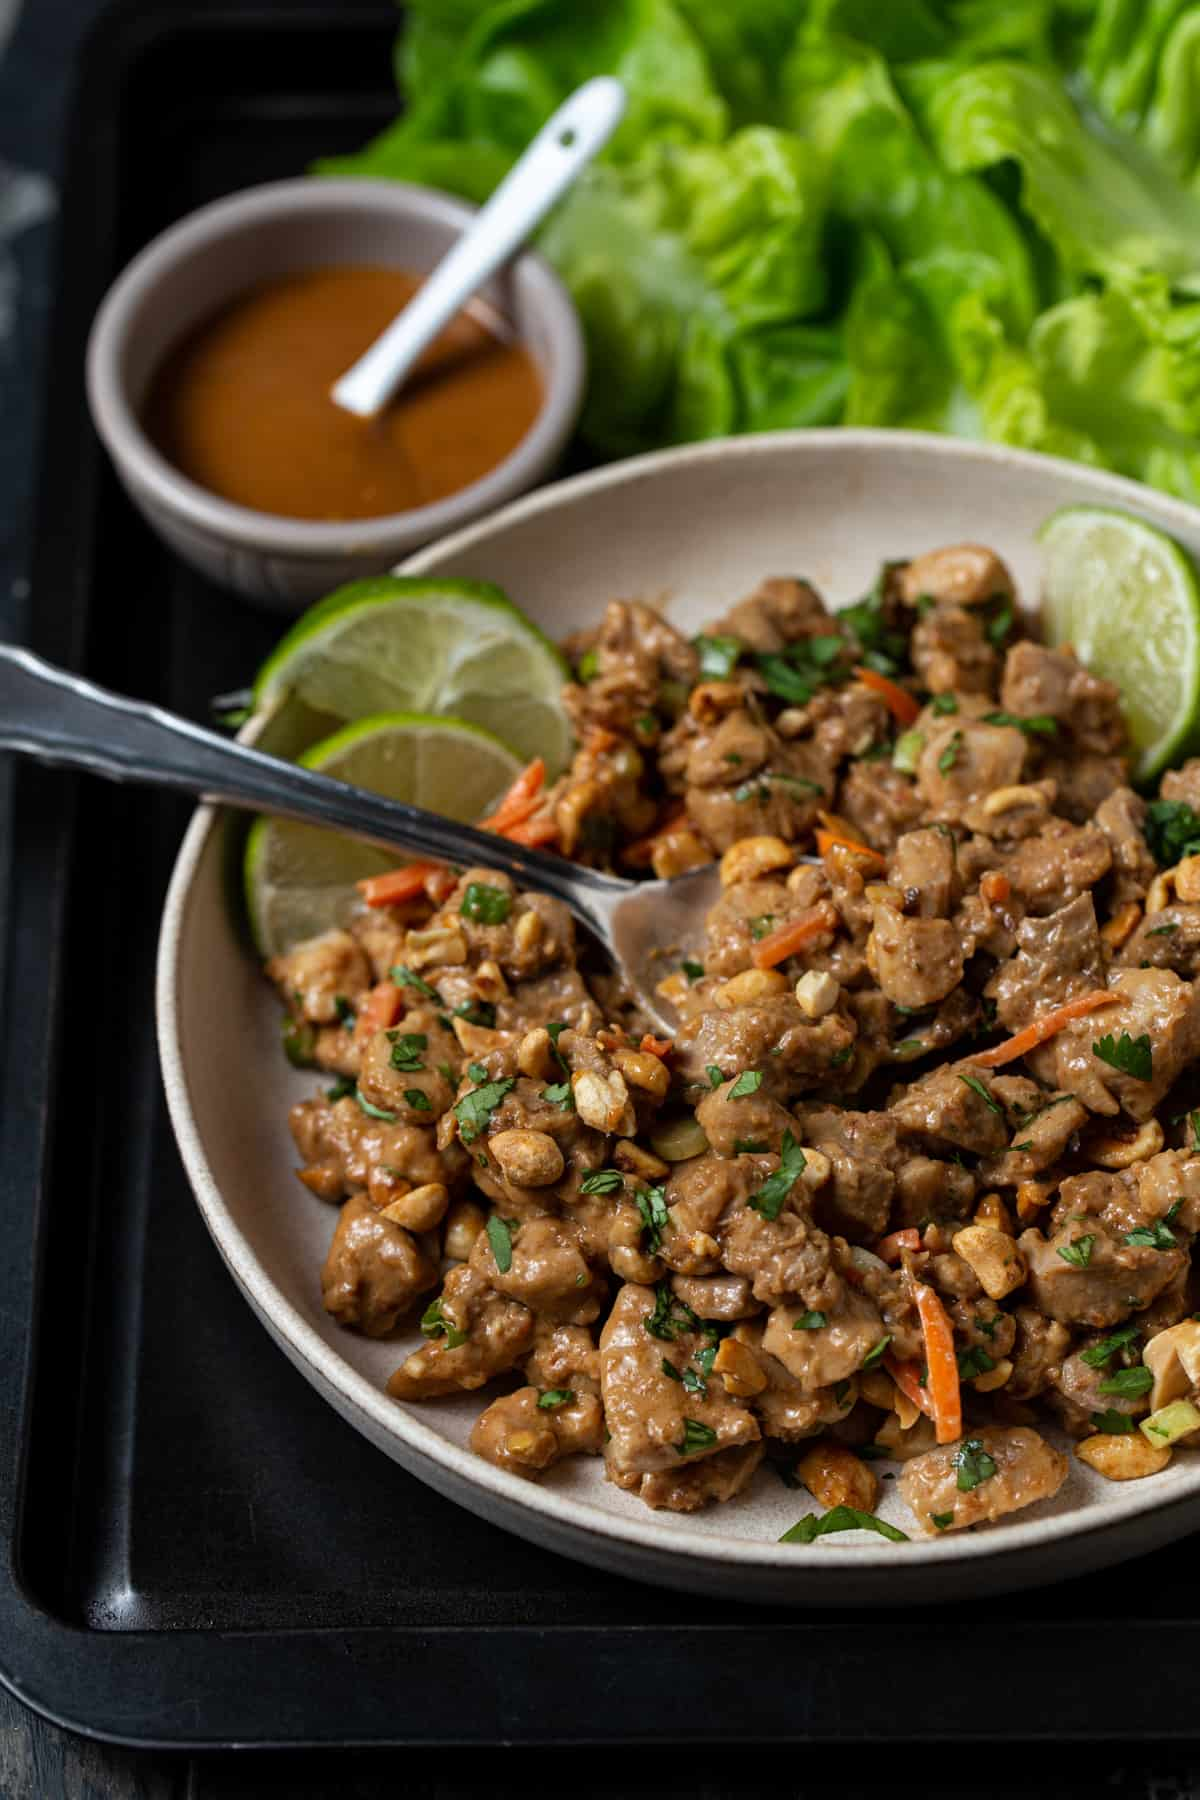 chopped chicken, cilantro carrots and peanuts in a peanut sauce on a gray plate.